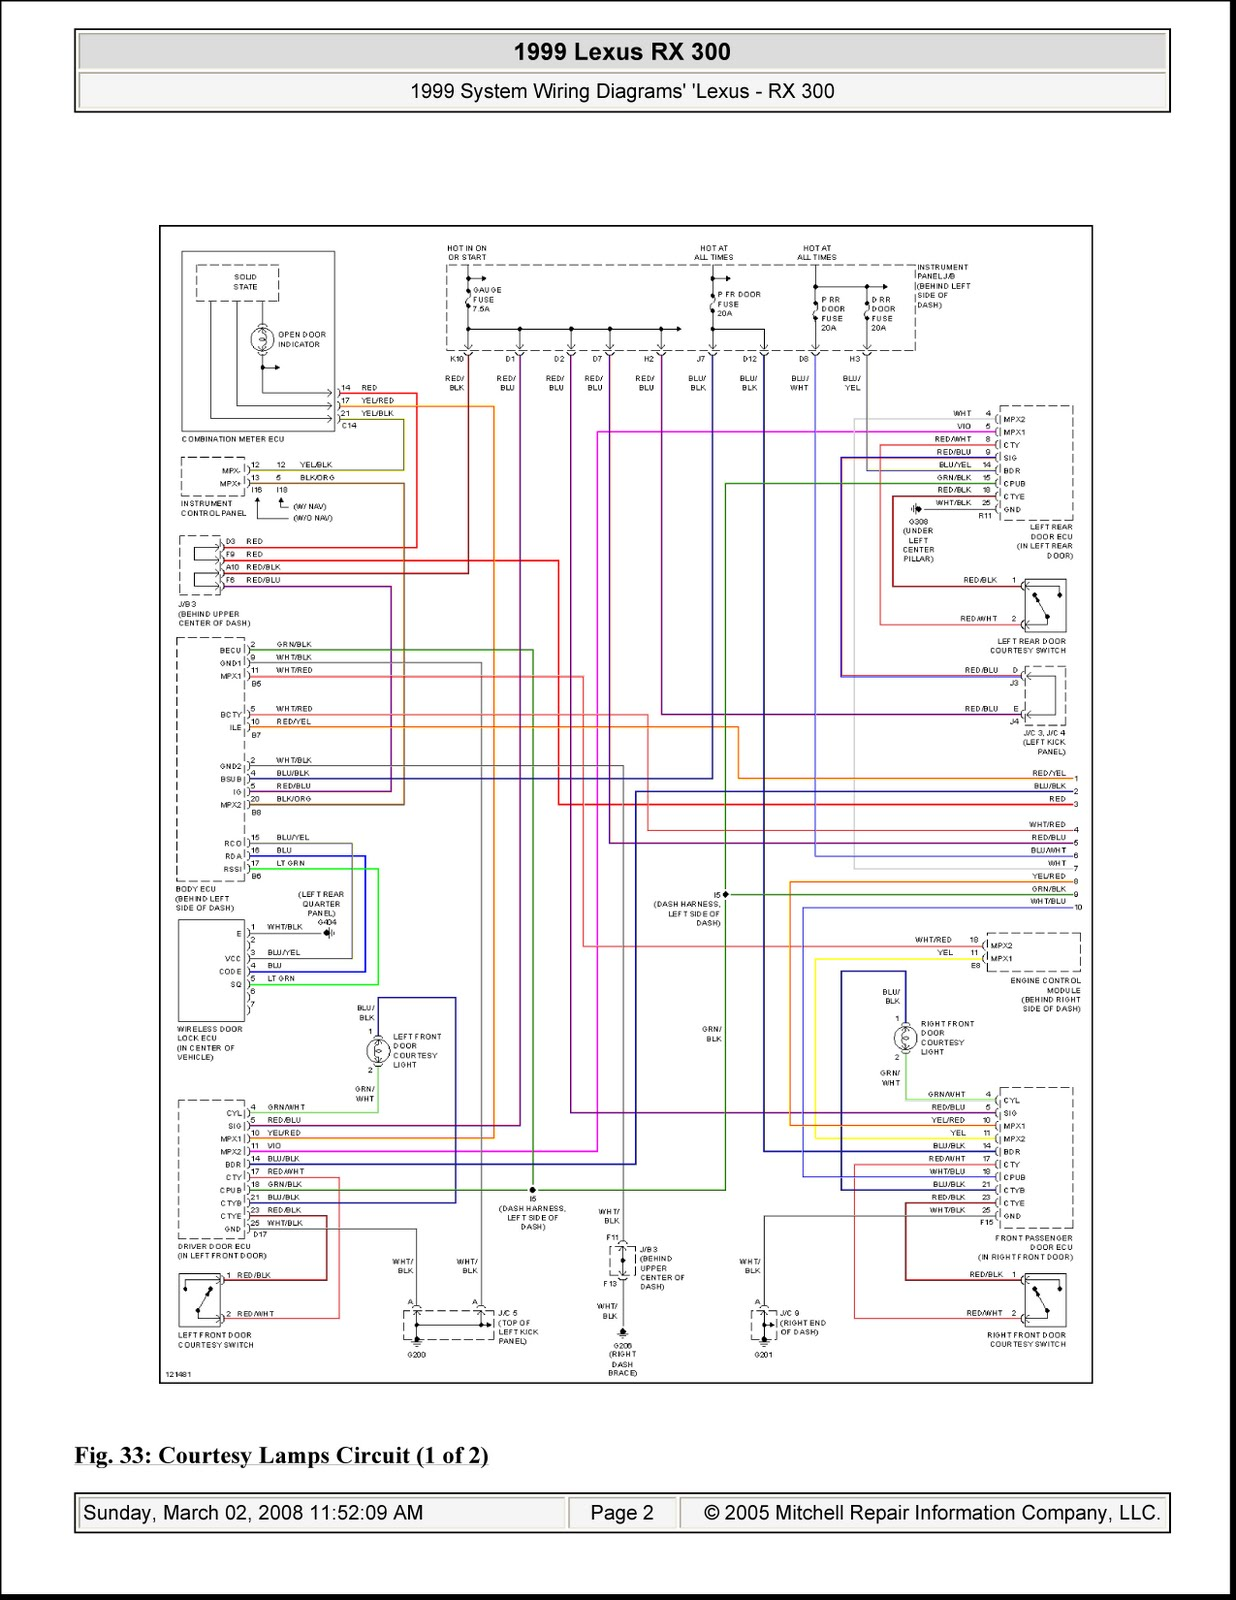 Bonneville Stereo Wiring Diagram on civic wiring diagram, impala wiring diagram, grand am wiring diagram, tr6 wiring diagram,